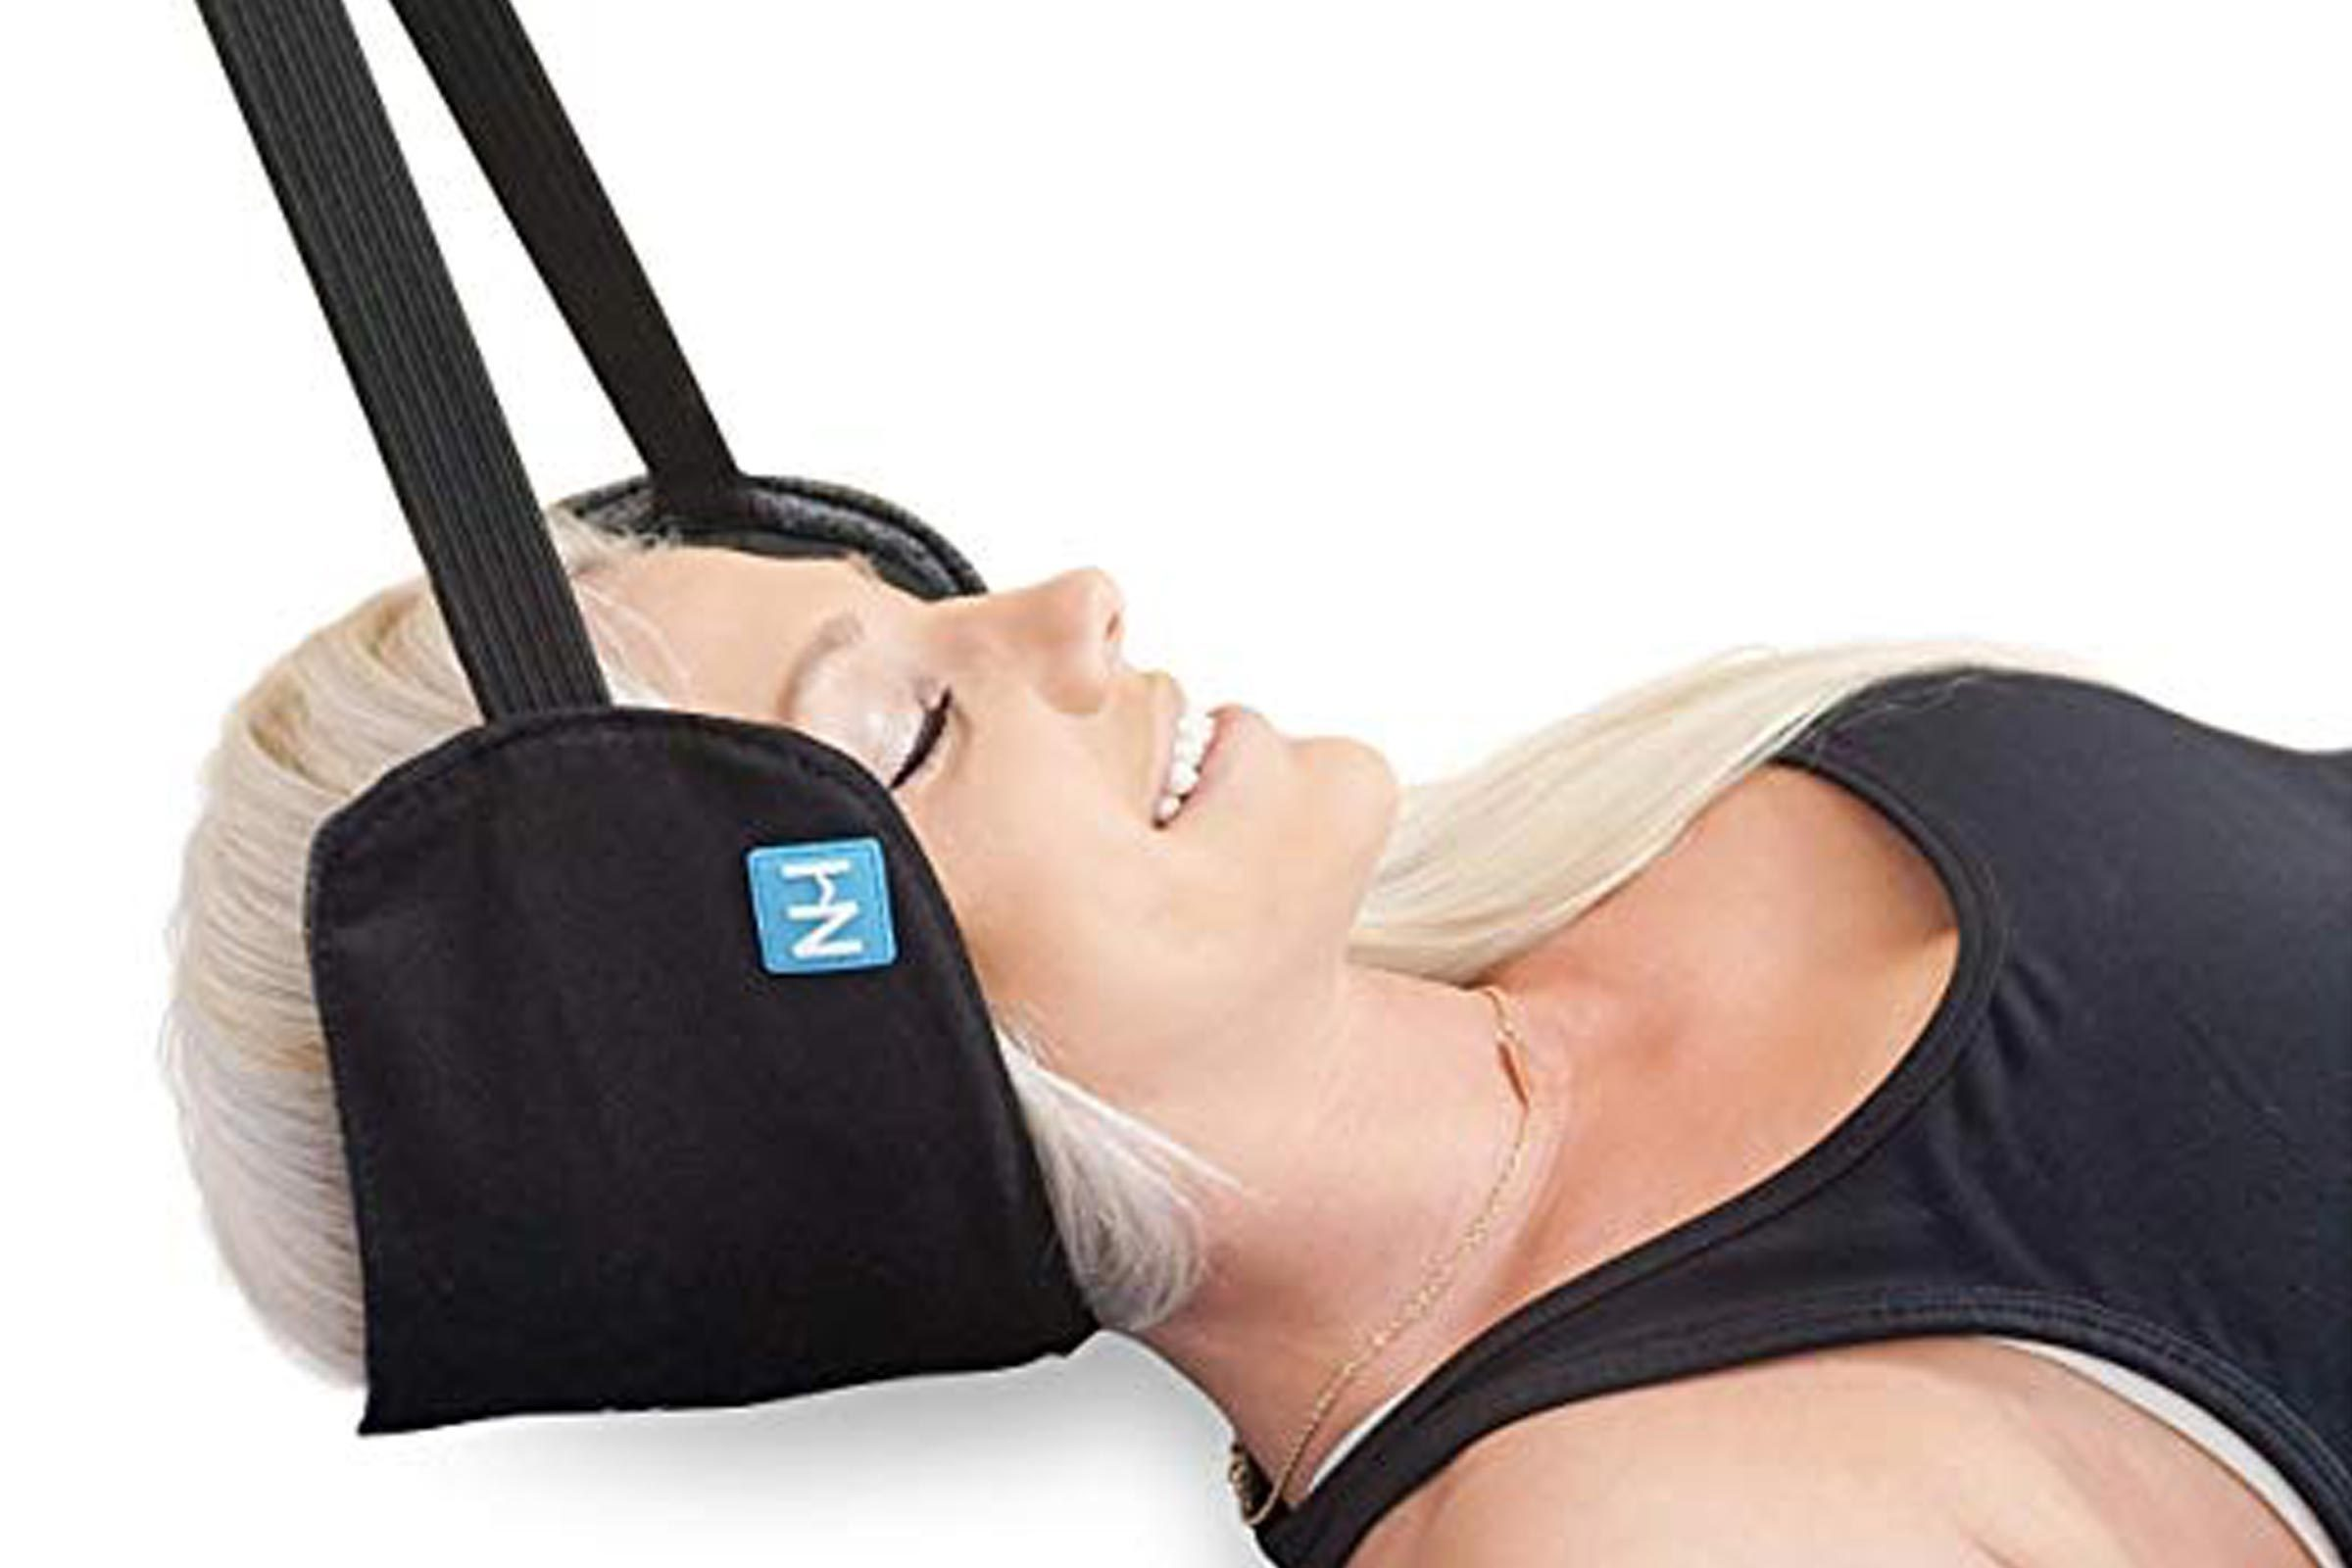 The Neck Hammock Portable Cervical Traction Device for Neck Pain Relief and Physical Therapy